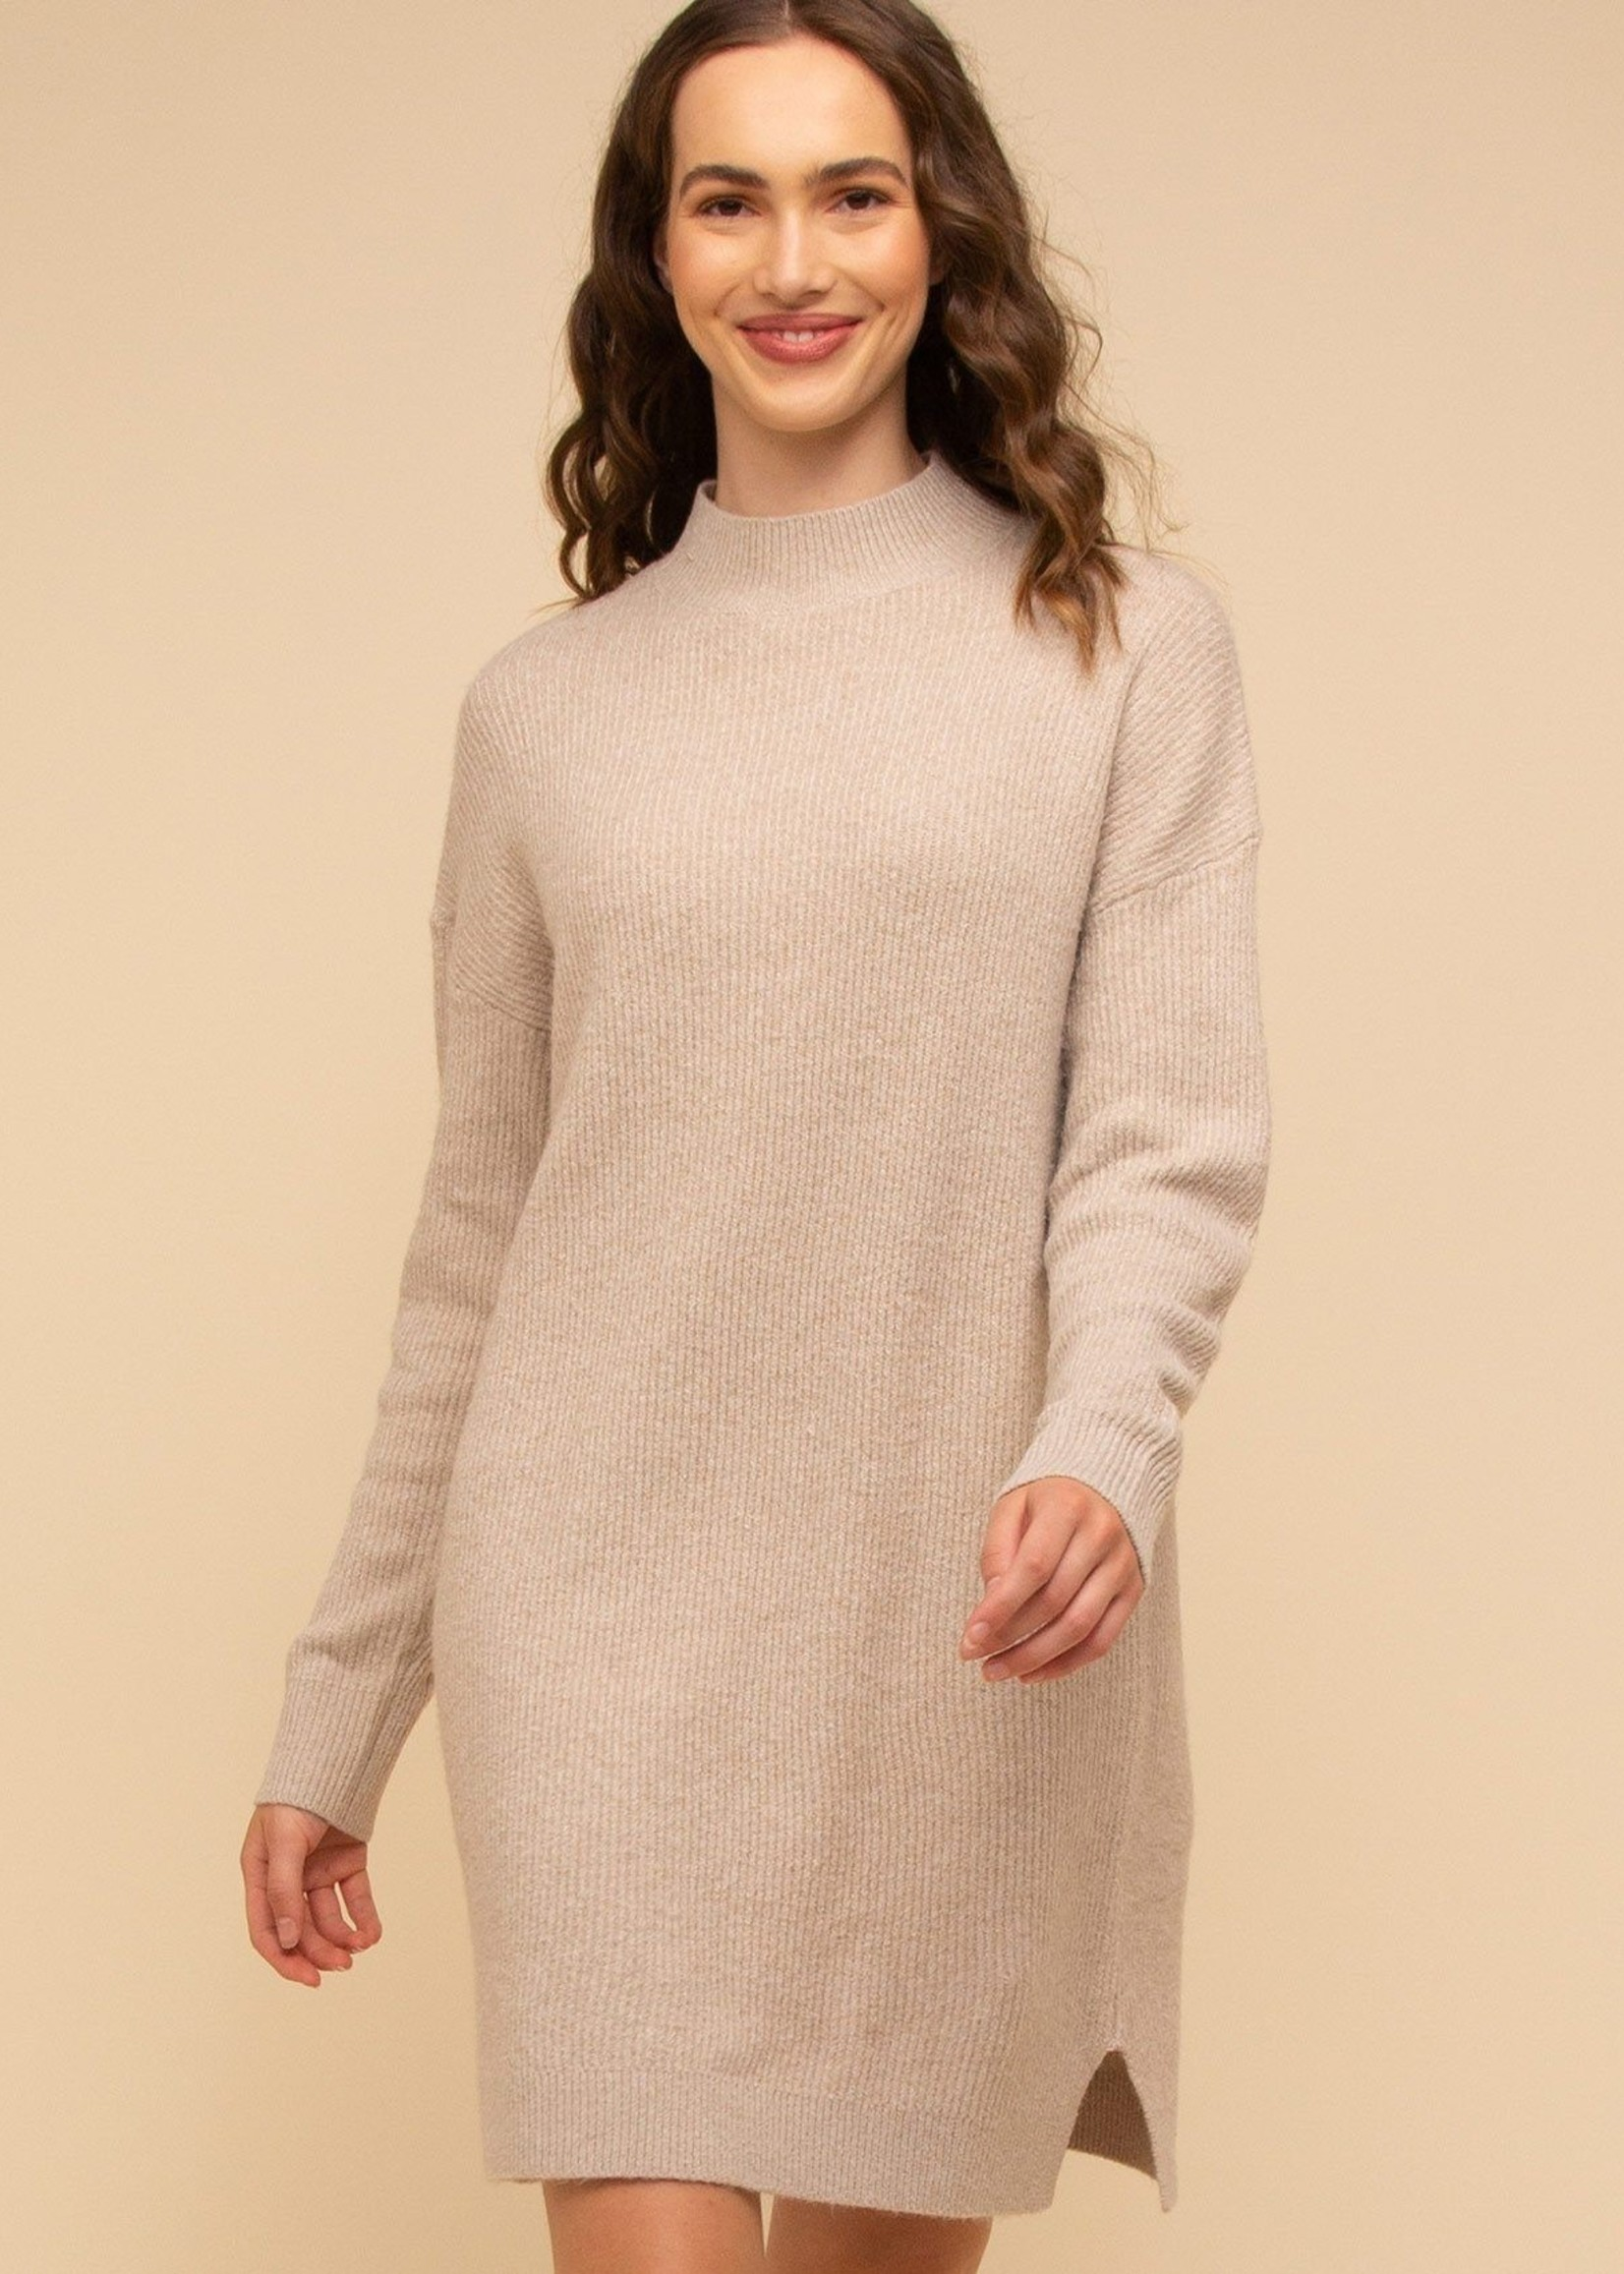 Thread & Supply Donnelly Dress - Oatmeal